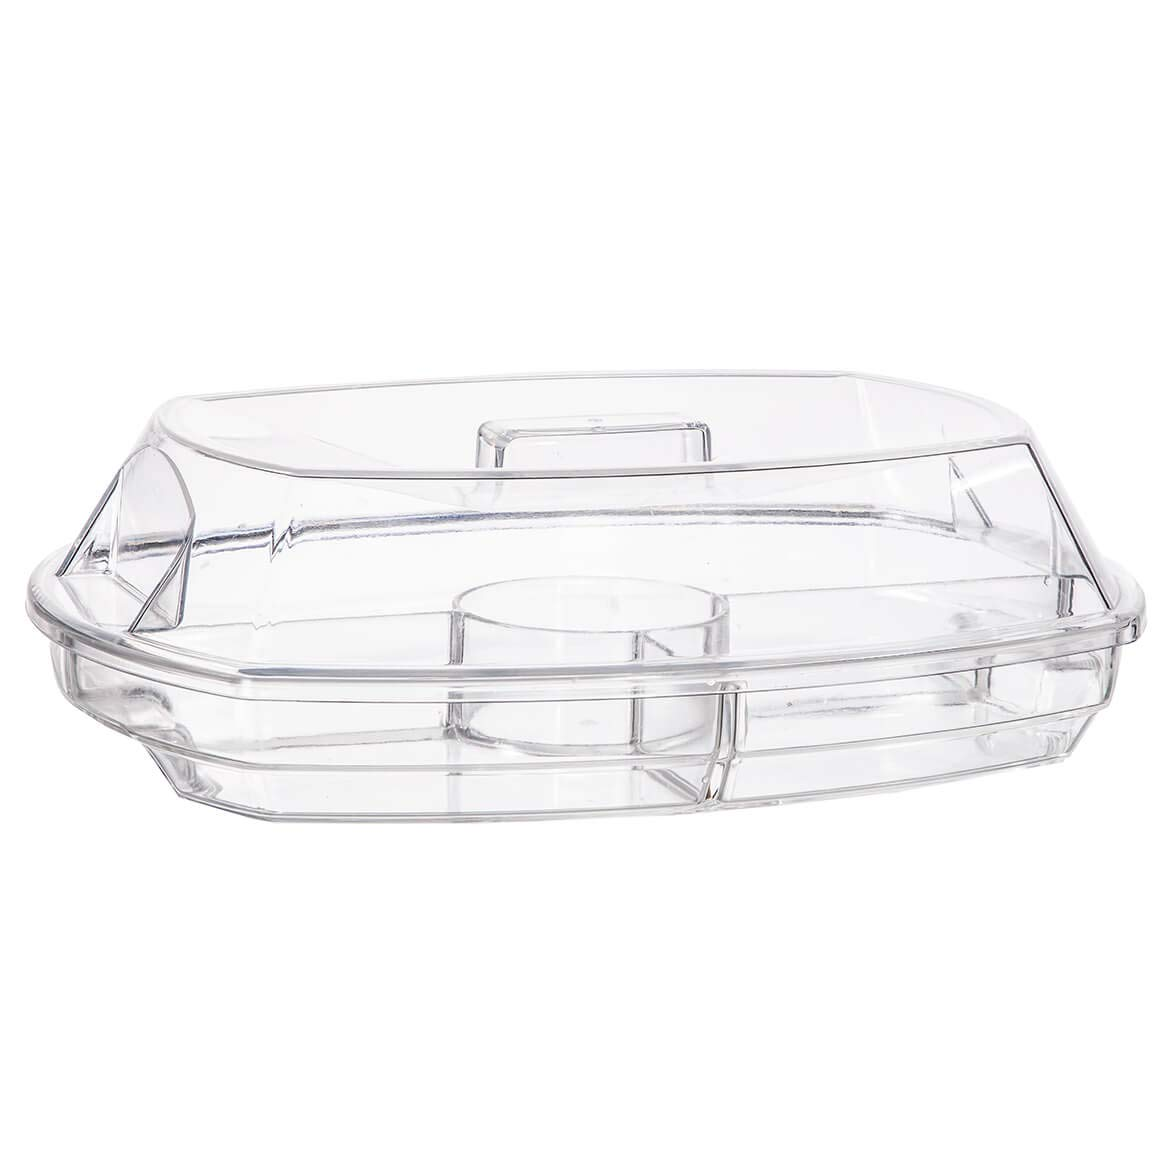 2 In 1 Iced Food Server